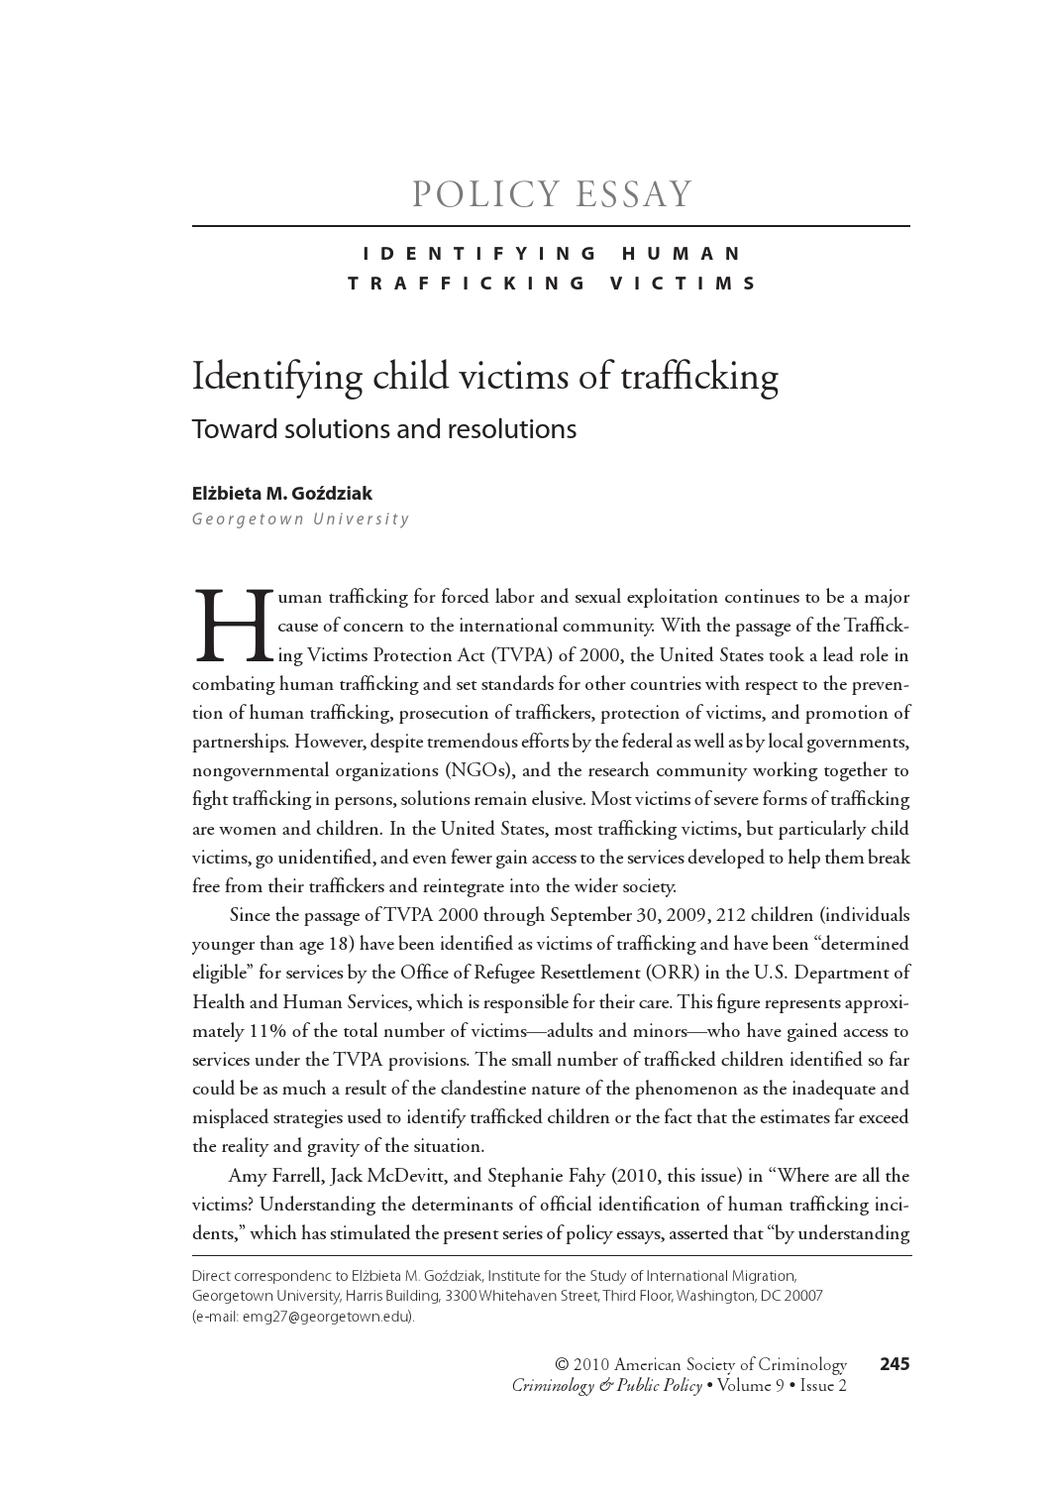 human trafficking: solutions essay An examination of the issues and challenges of trafficking bring us face to face with the stark reality of the situation hordes of women an.